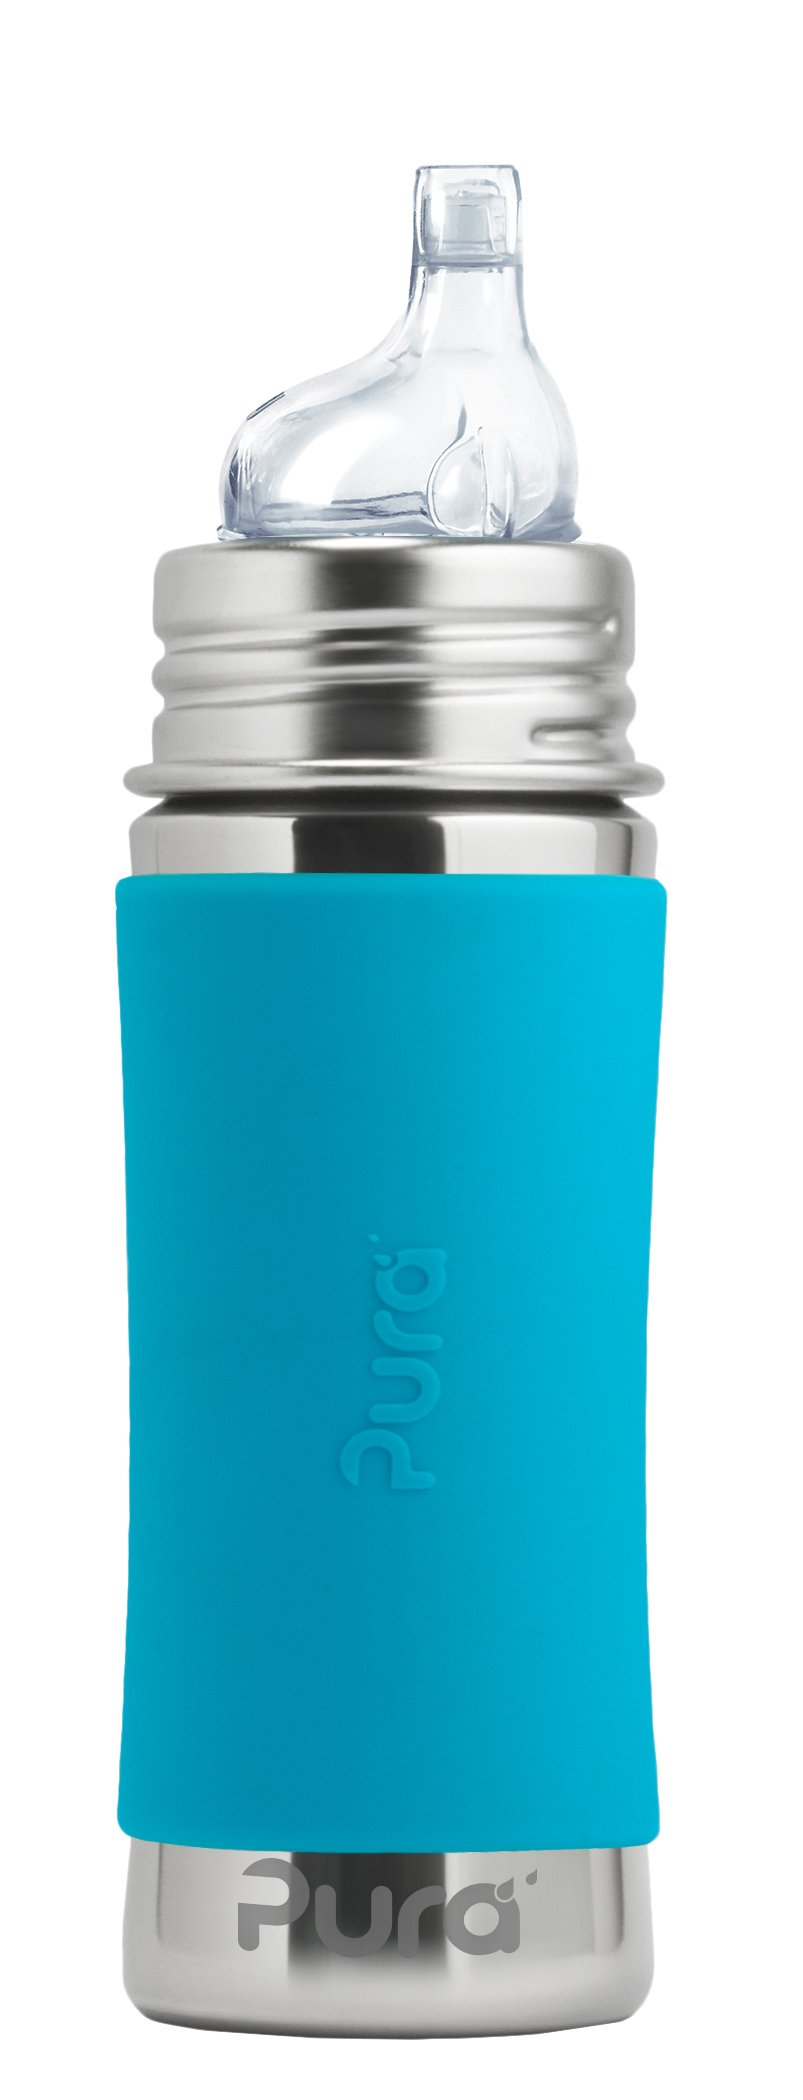 Pura Kiki 11 oz / 325 ml Stainless Steel Sippy Cup with Silicone XL Sipper Spout & Sleeve, Aqua (Plastic Free, NonToxic Certified, BPA Free)